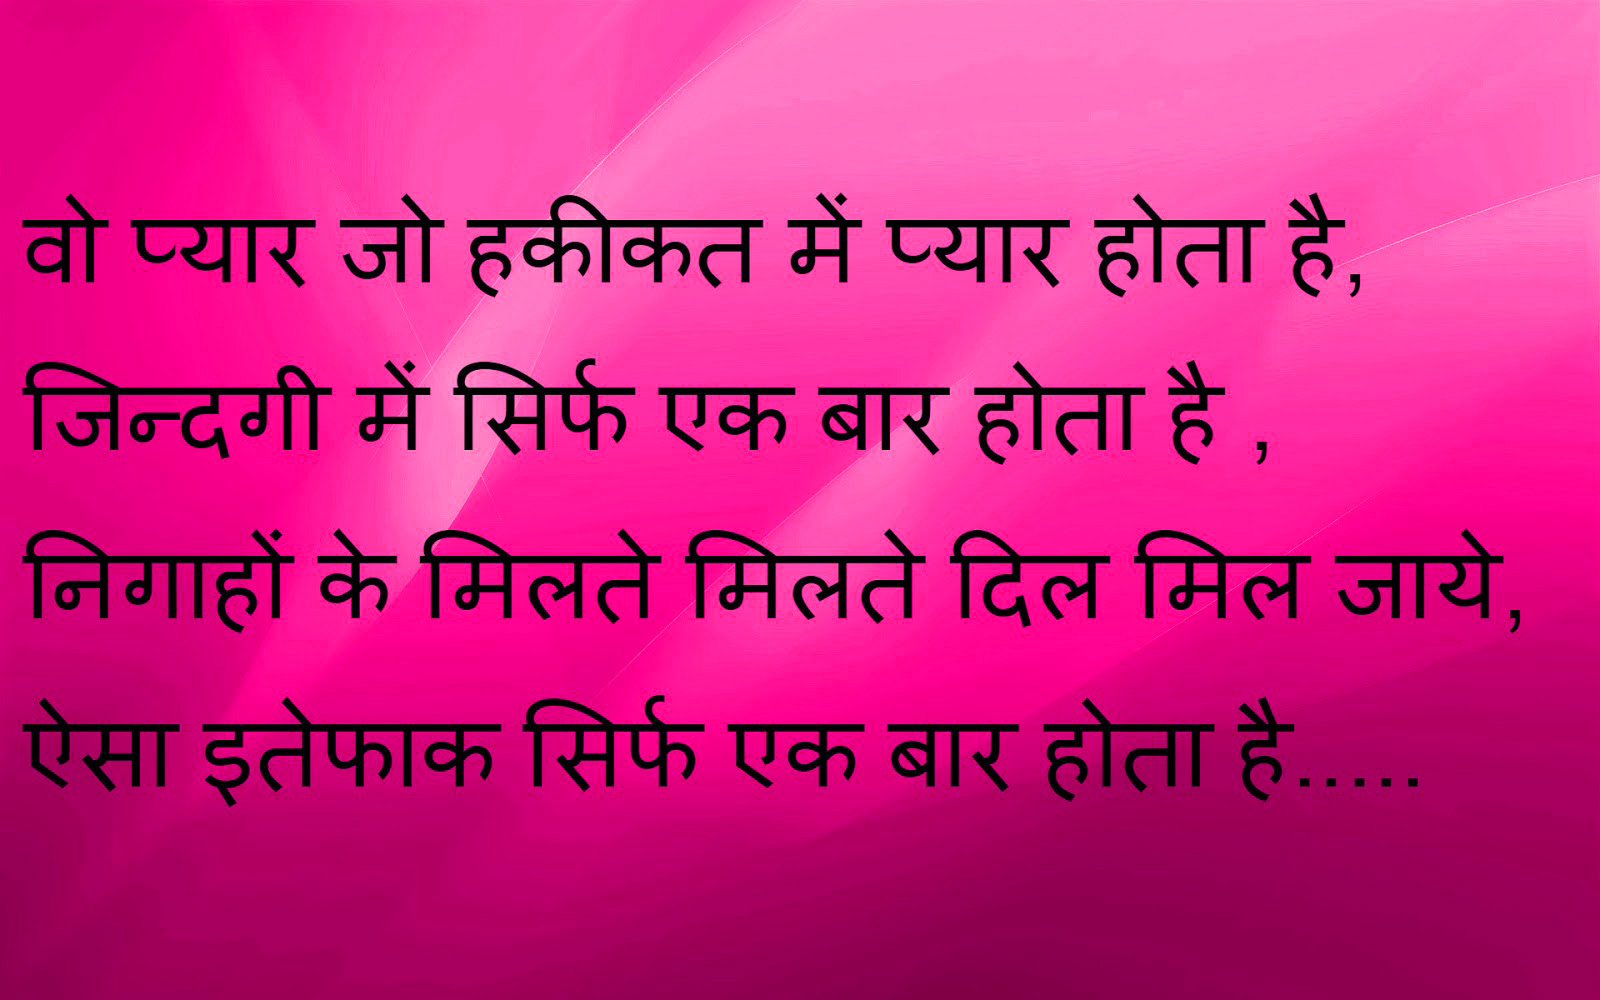 Hindi Sad Love Romantic Shayari Photo Wallpaper Pictures Download